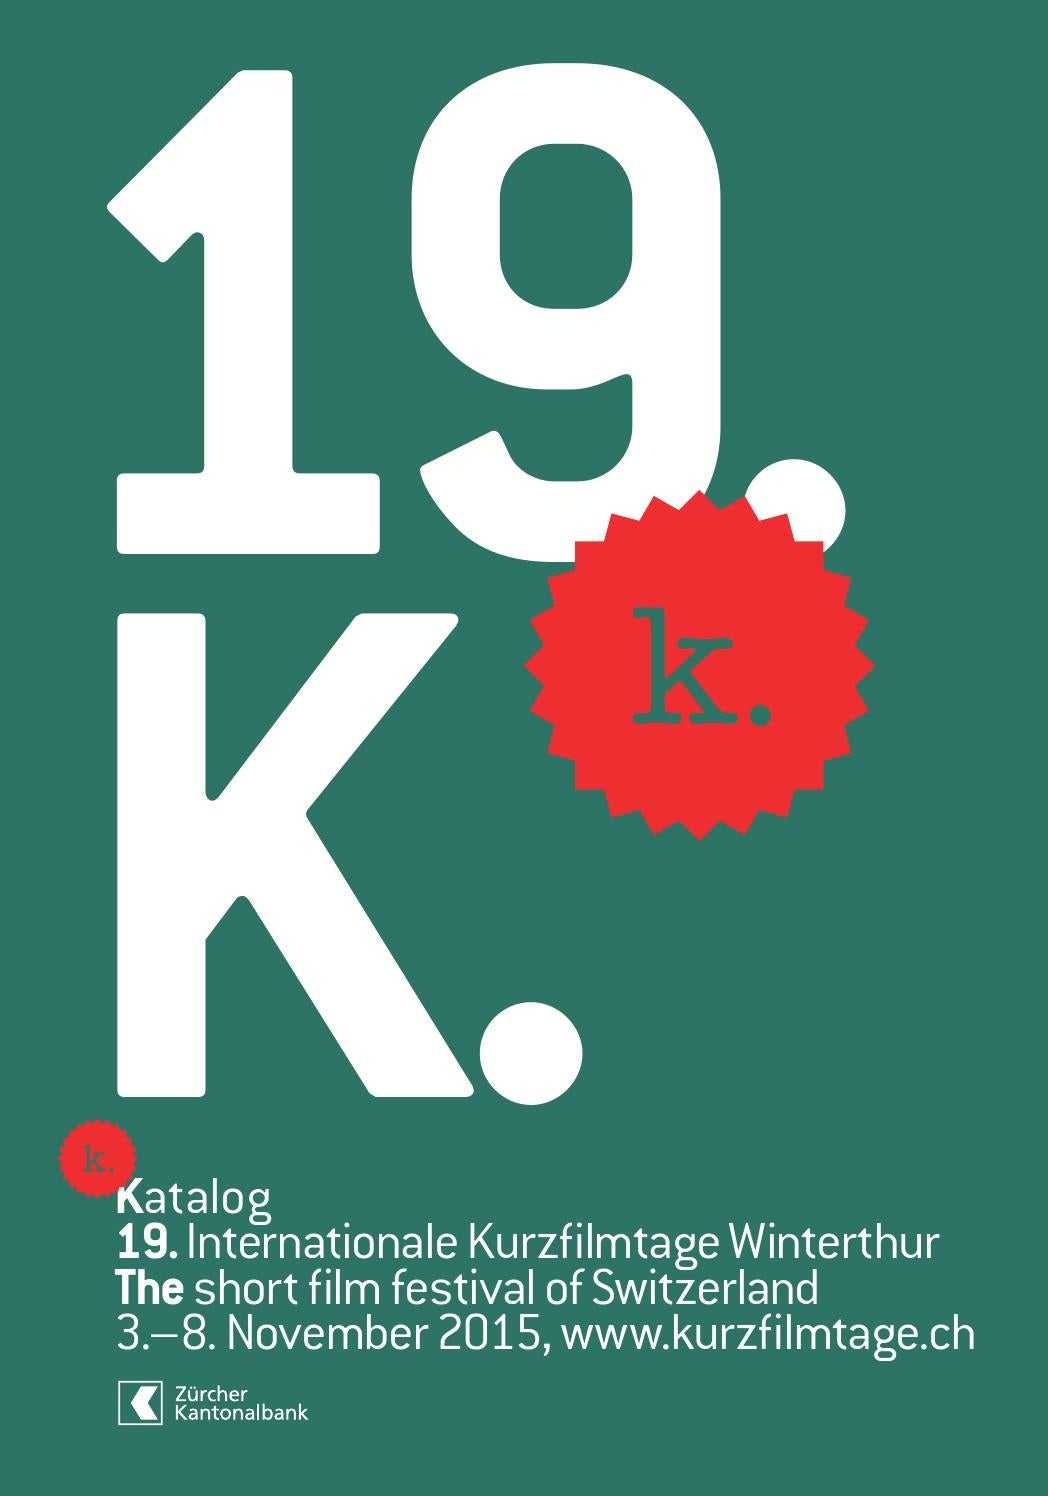 Arte Zu Tisch Karelien Katalog 19 Internationale Kurzfilmtage Winterthur By Int